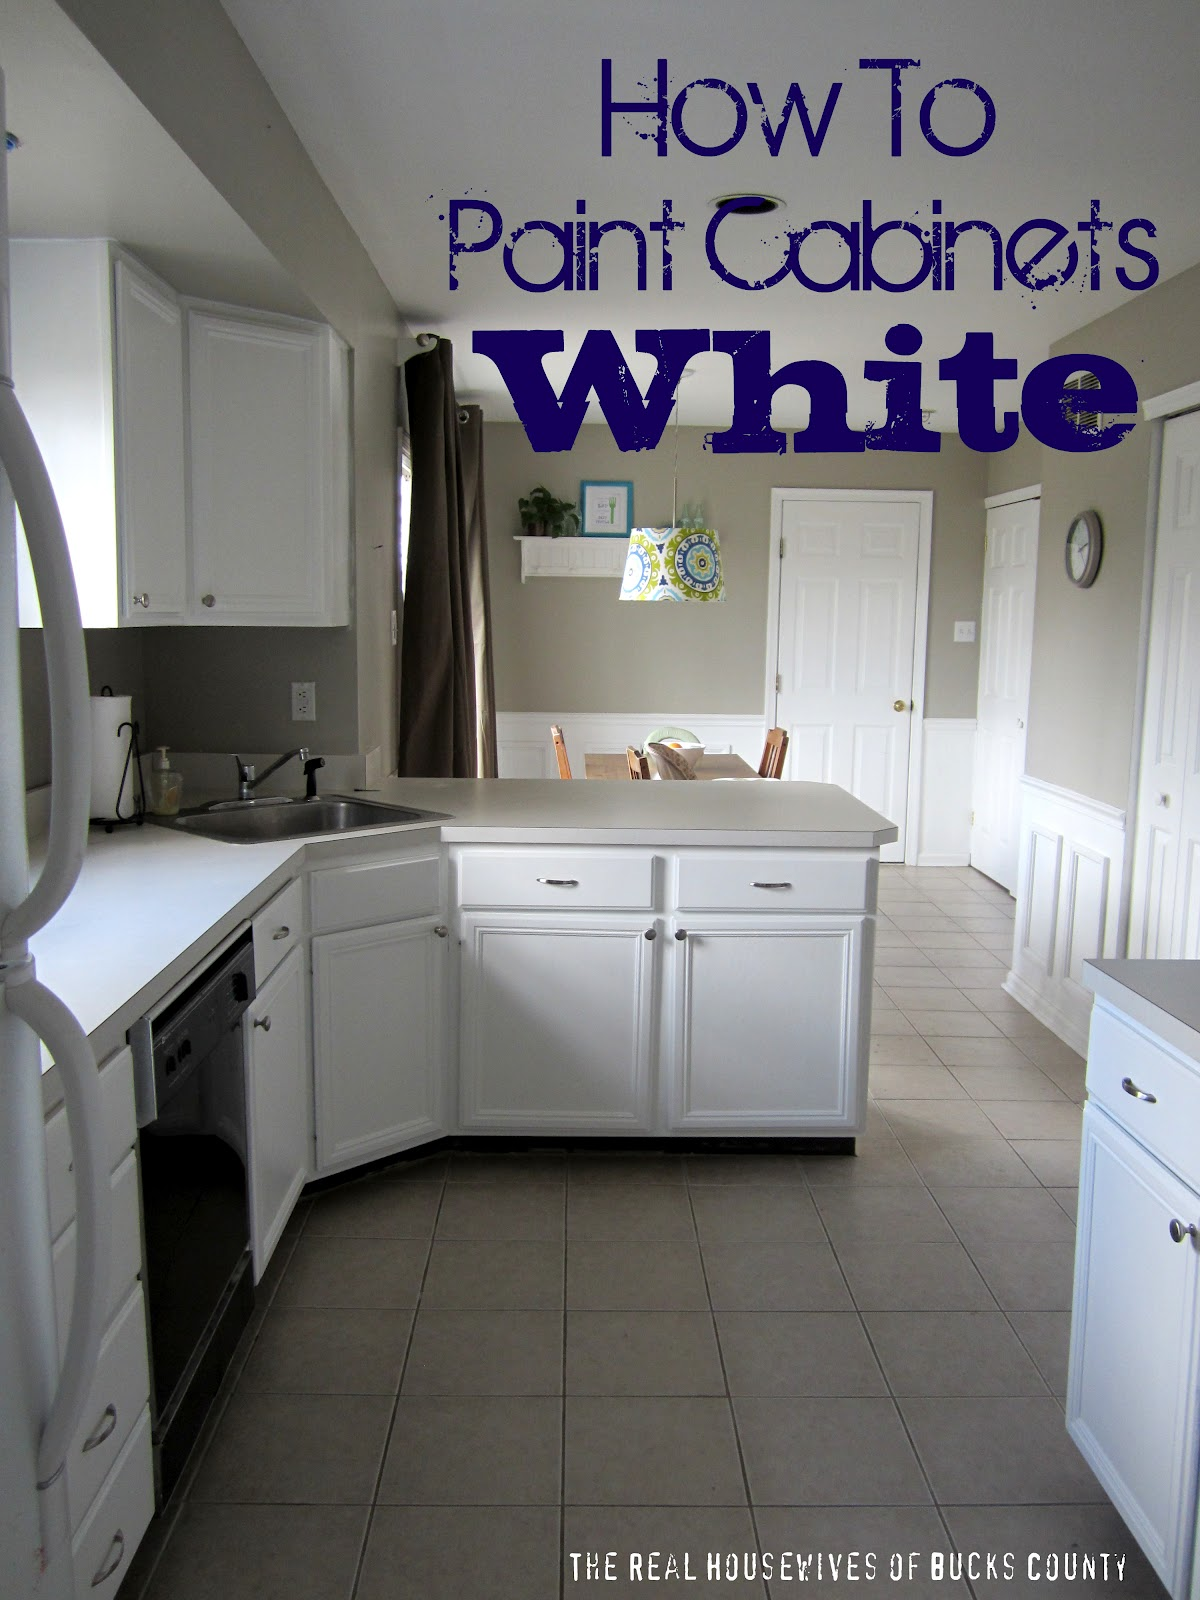 how to paint cabinets white. Black Bedroom Furniture Sets. Home Design Ideas